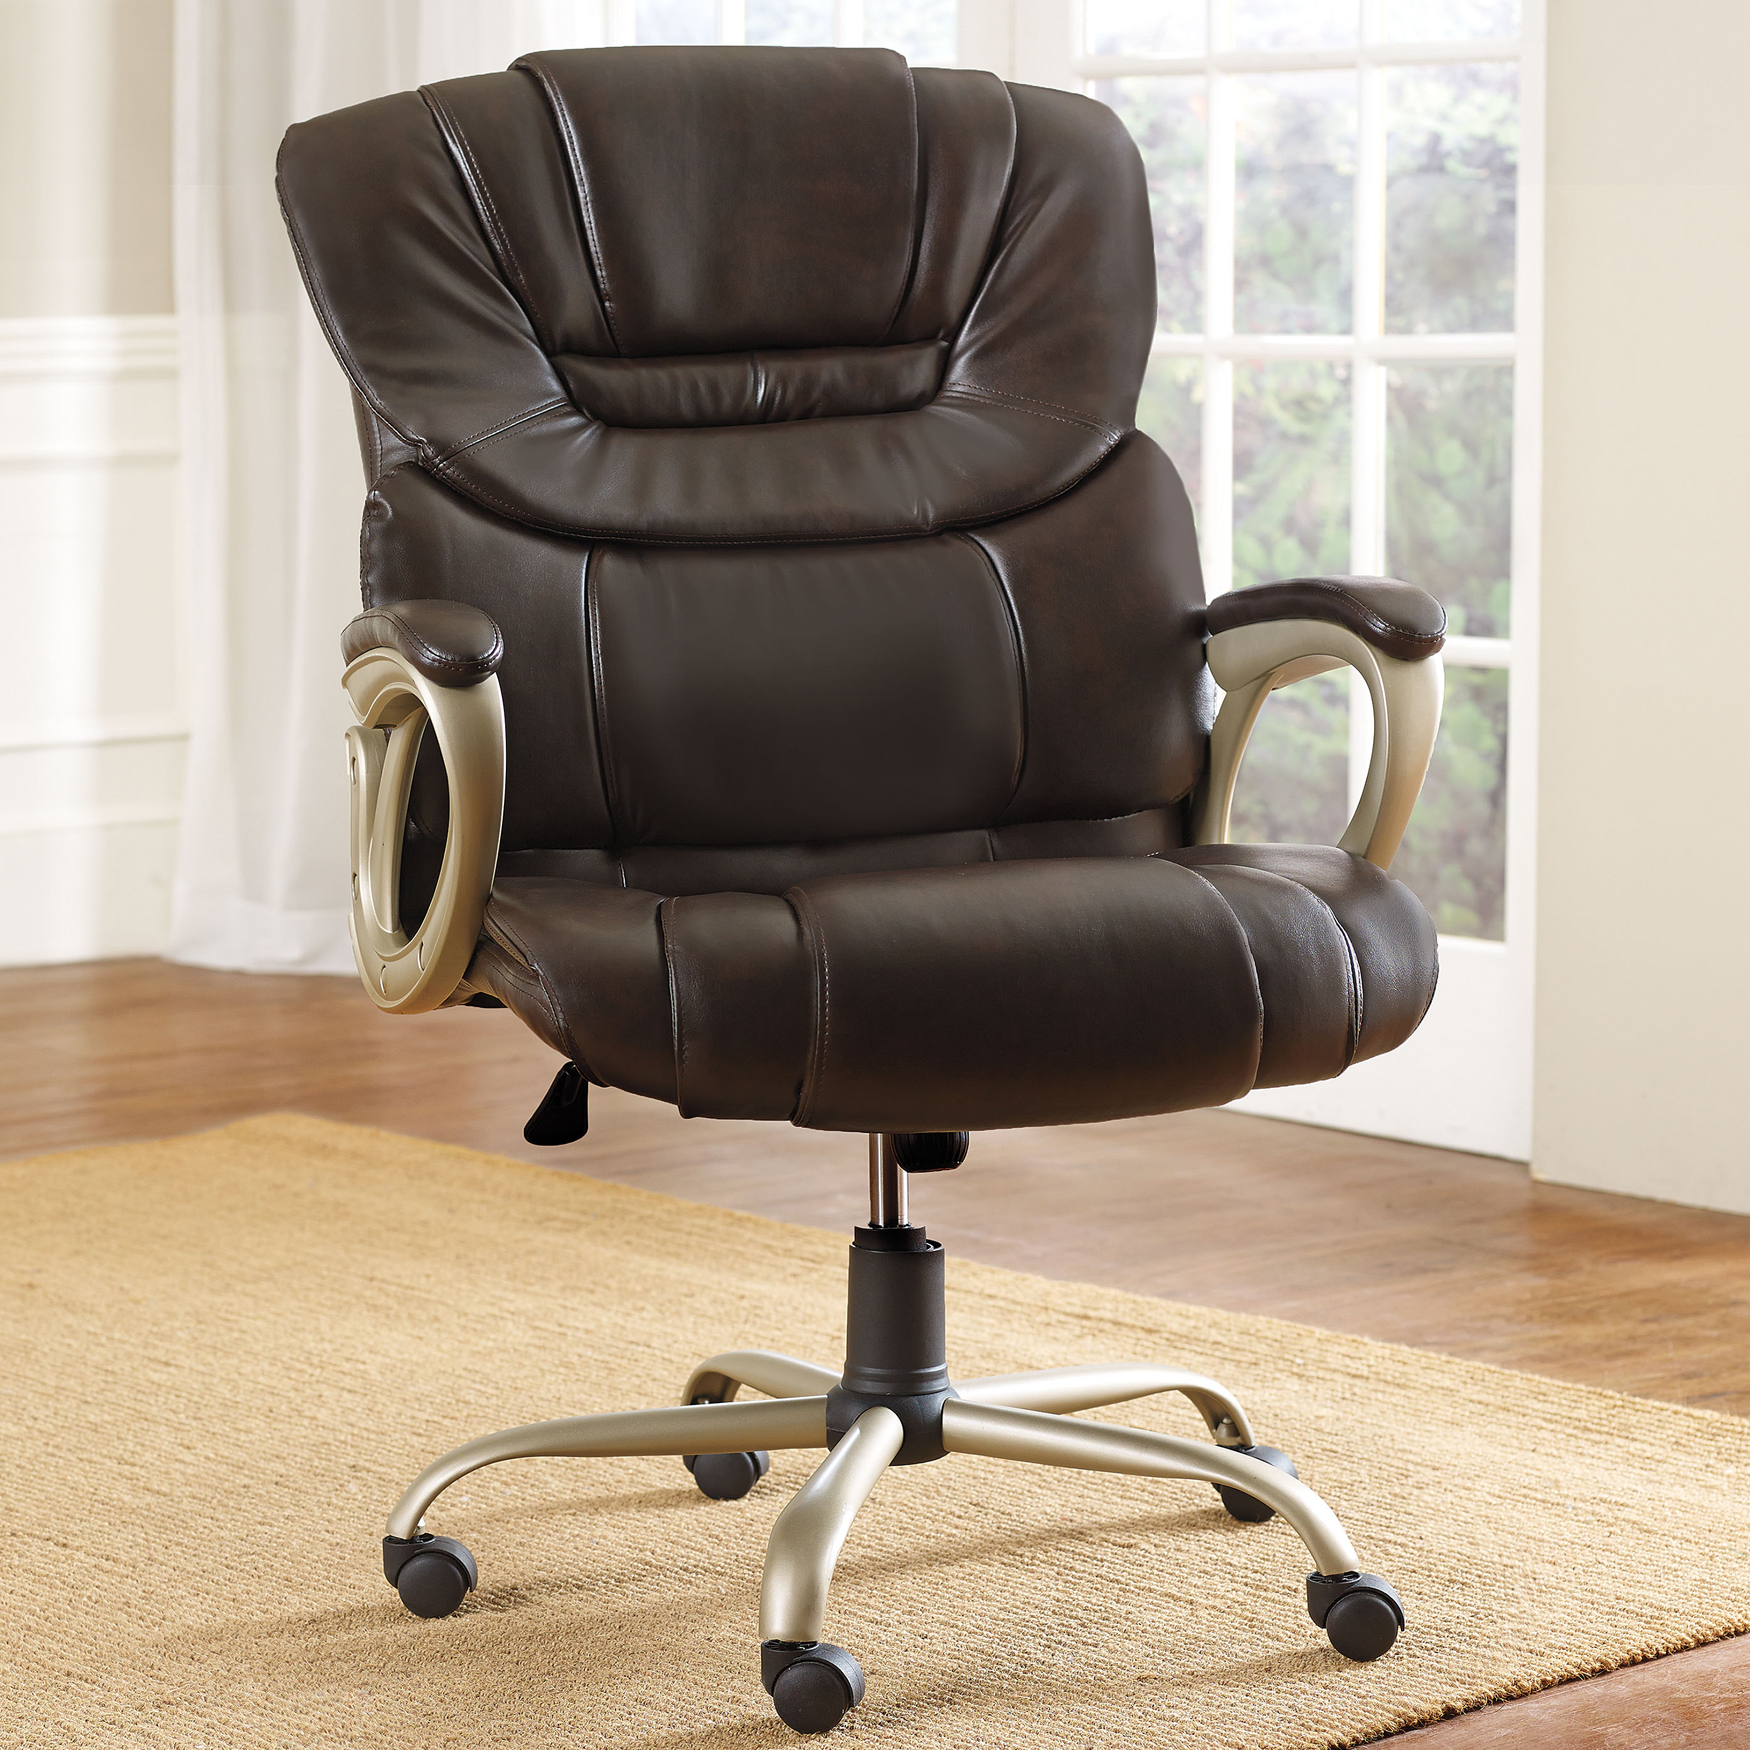 padded office chair black director covers now enjoy the plus size living collectionextra wide